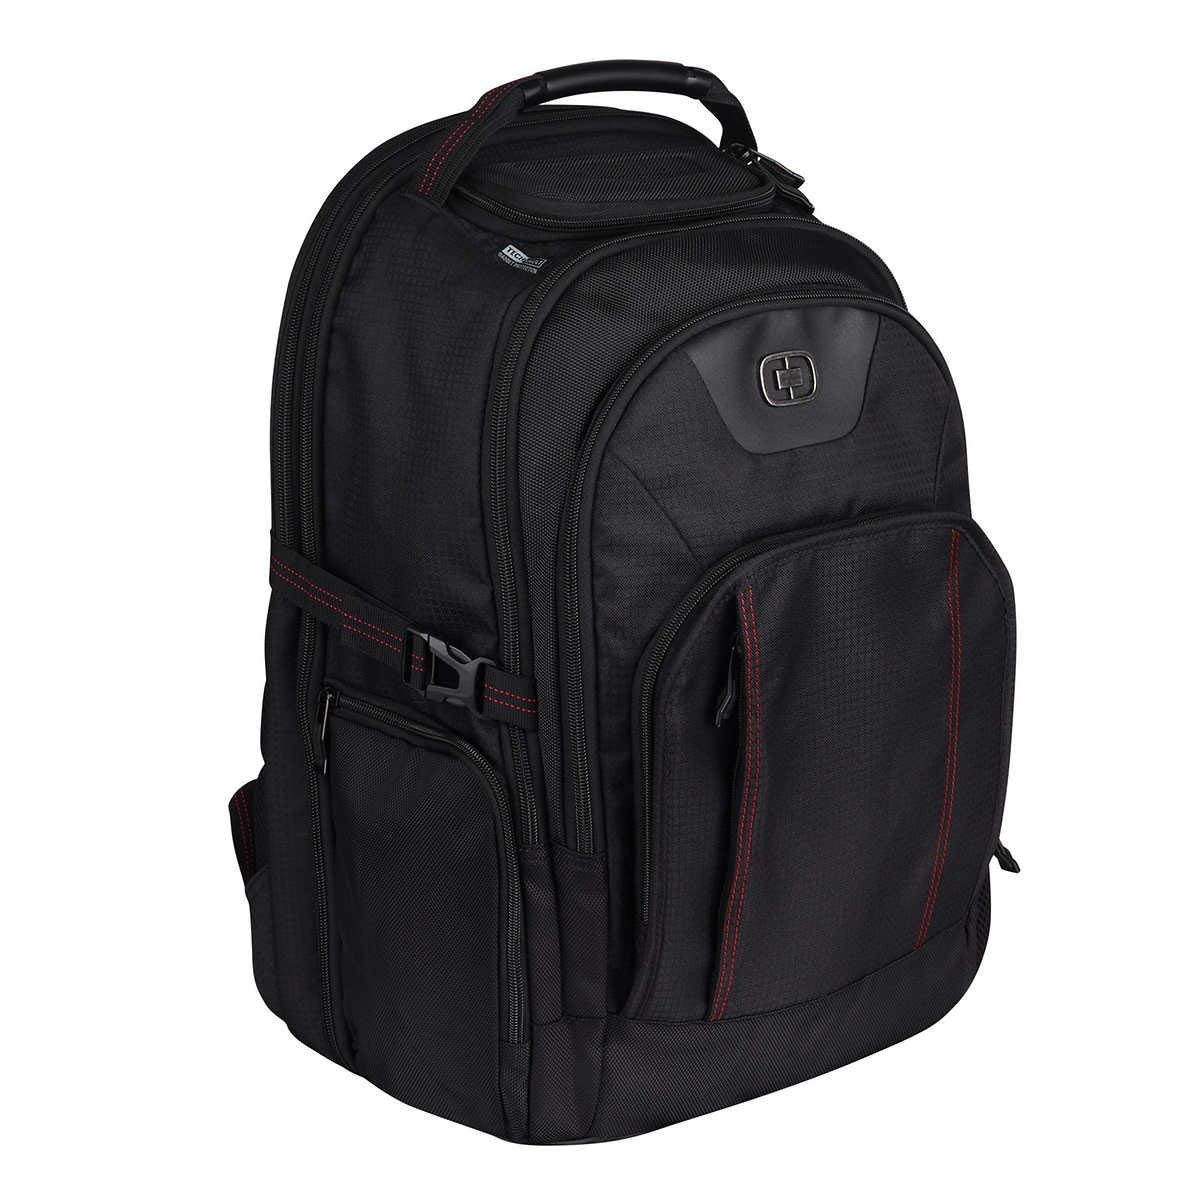 OGIO Prospect Professional Utility Backpack Fits Up to 17 Laptops Black